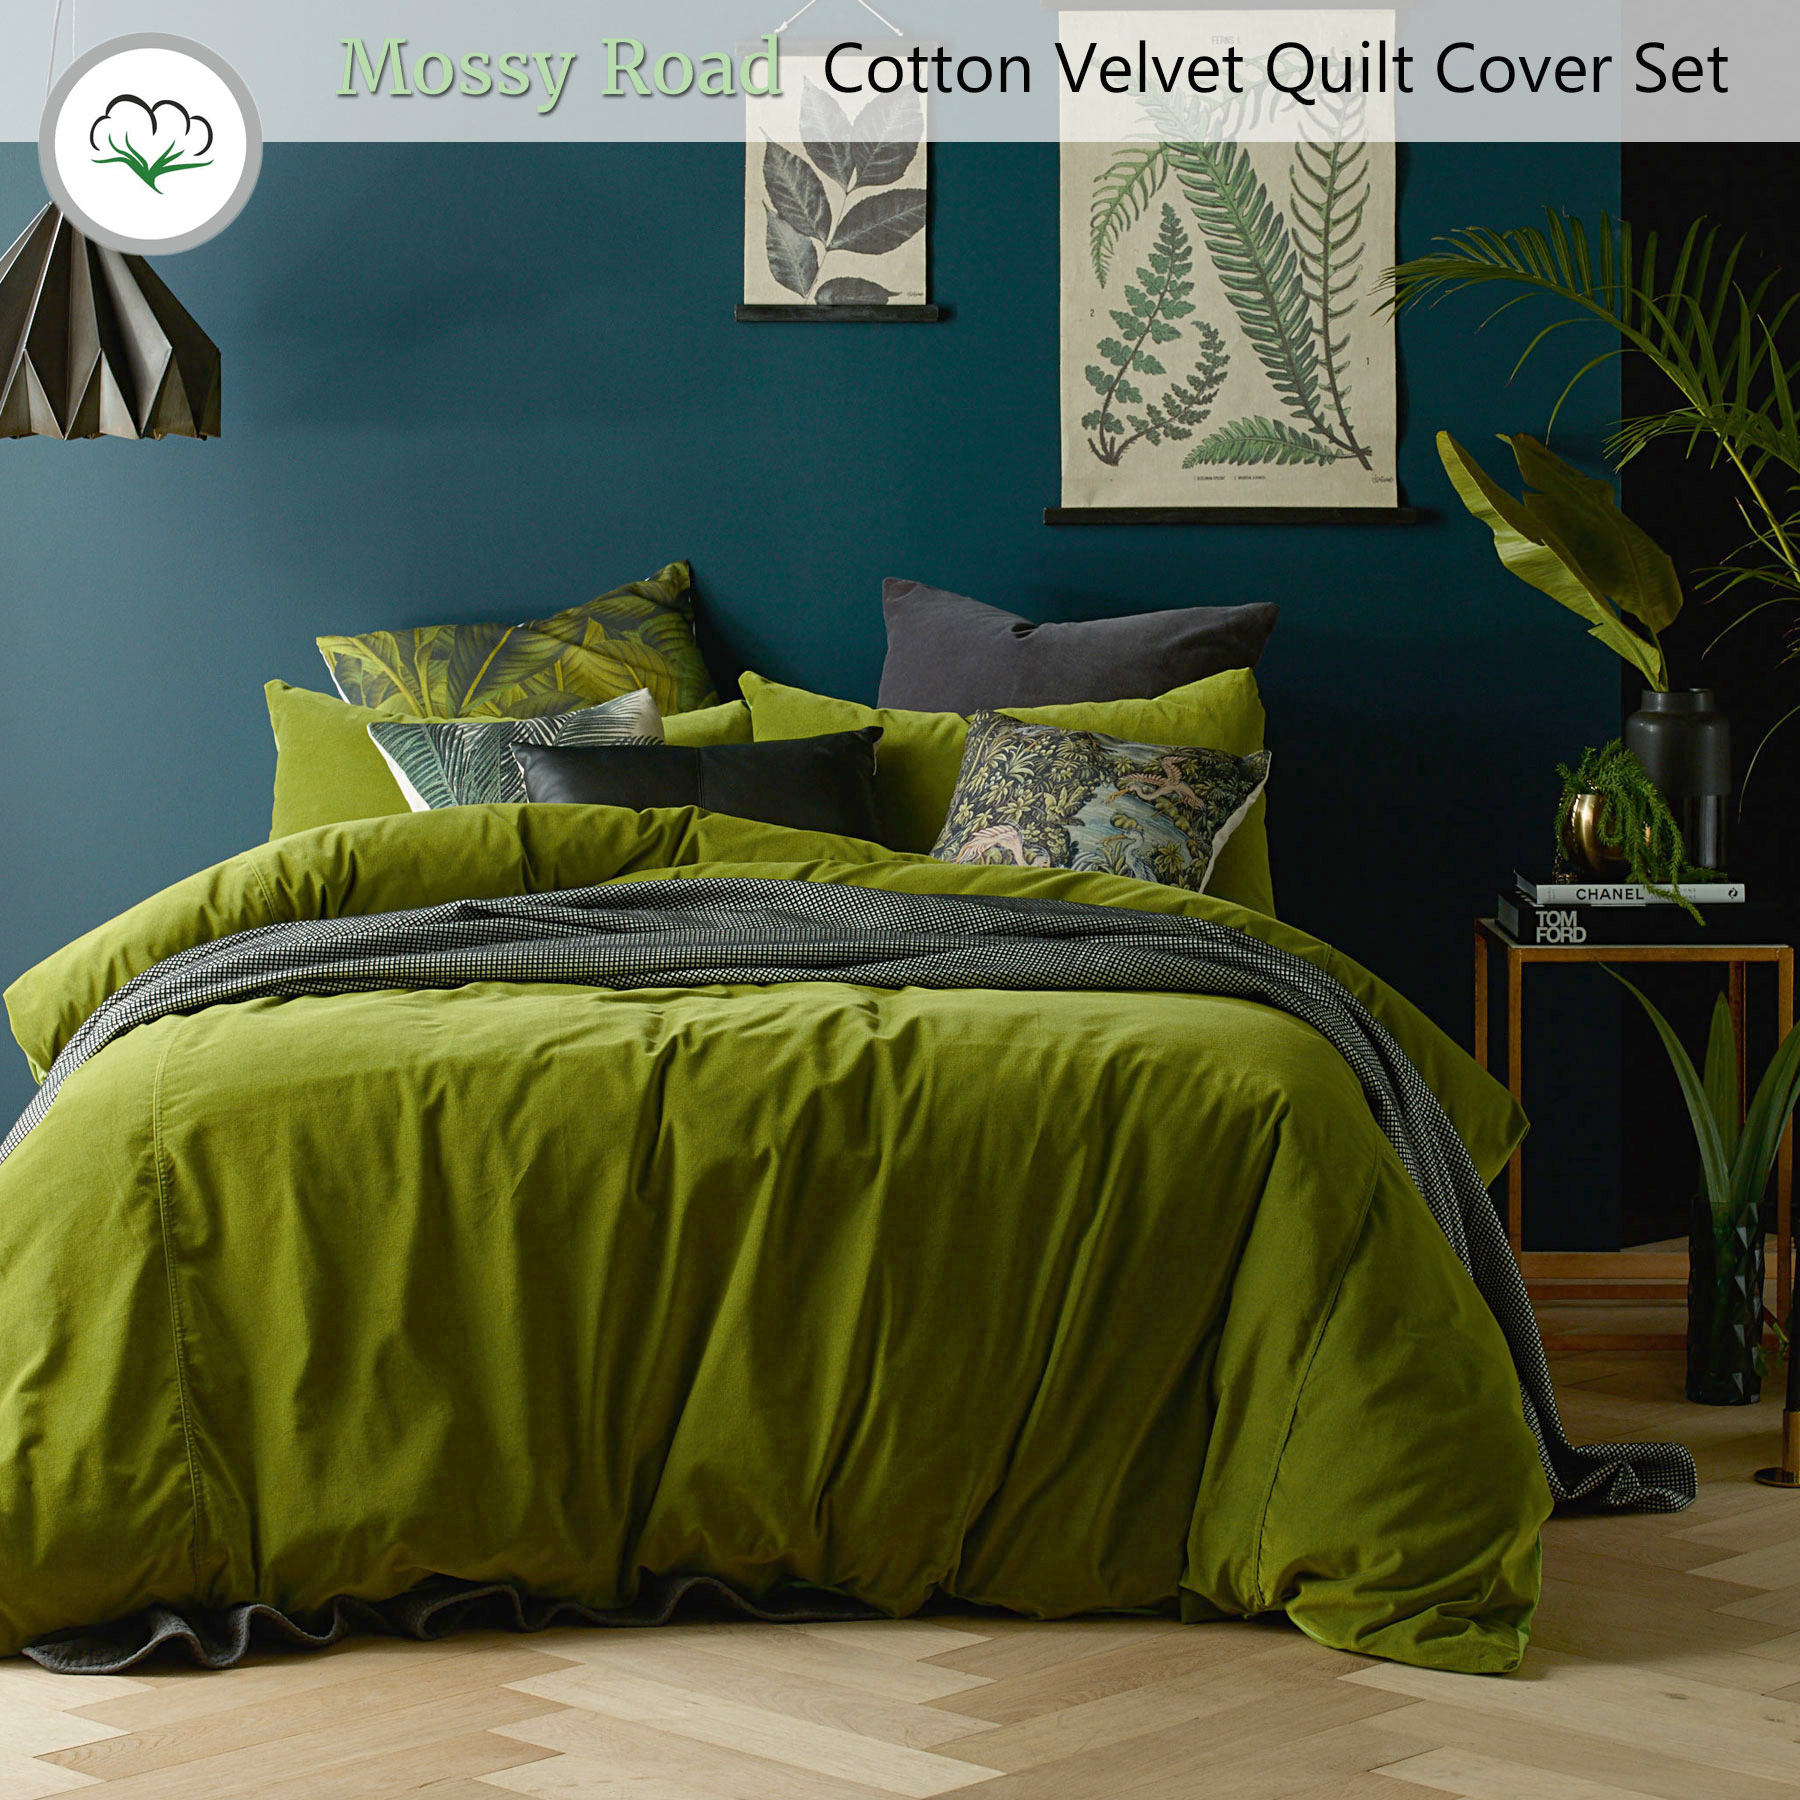 Mossy Road Cotton Velvet Quilt Cover Set Or Eurocases